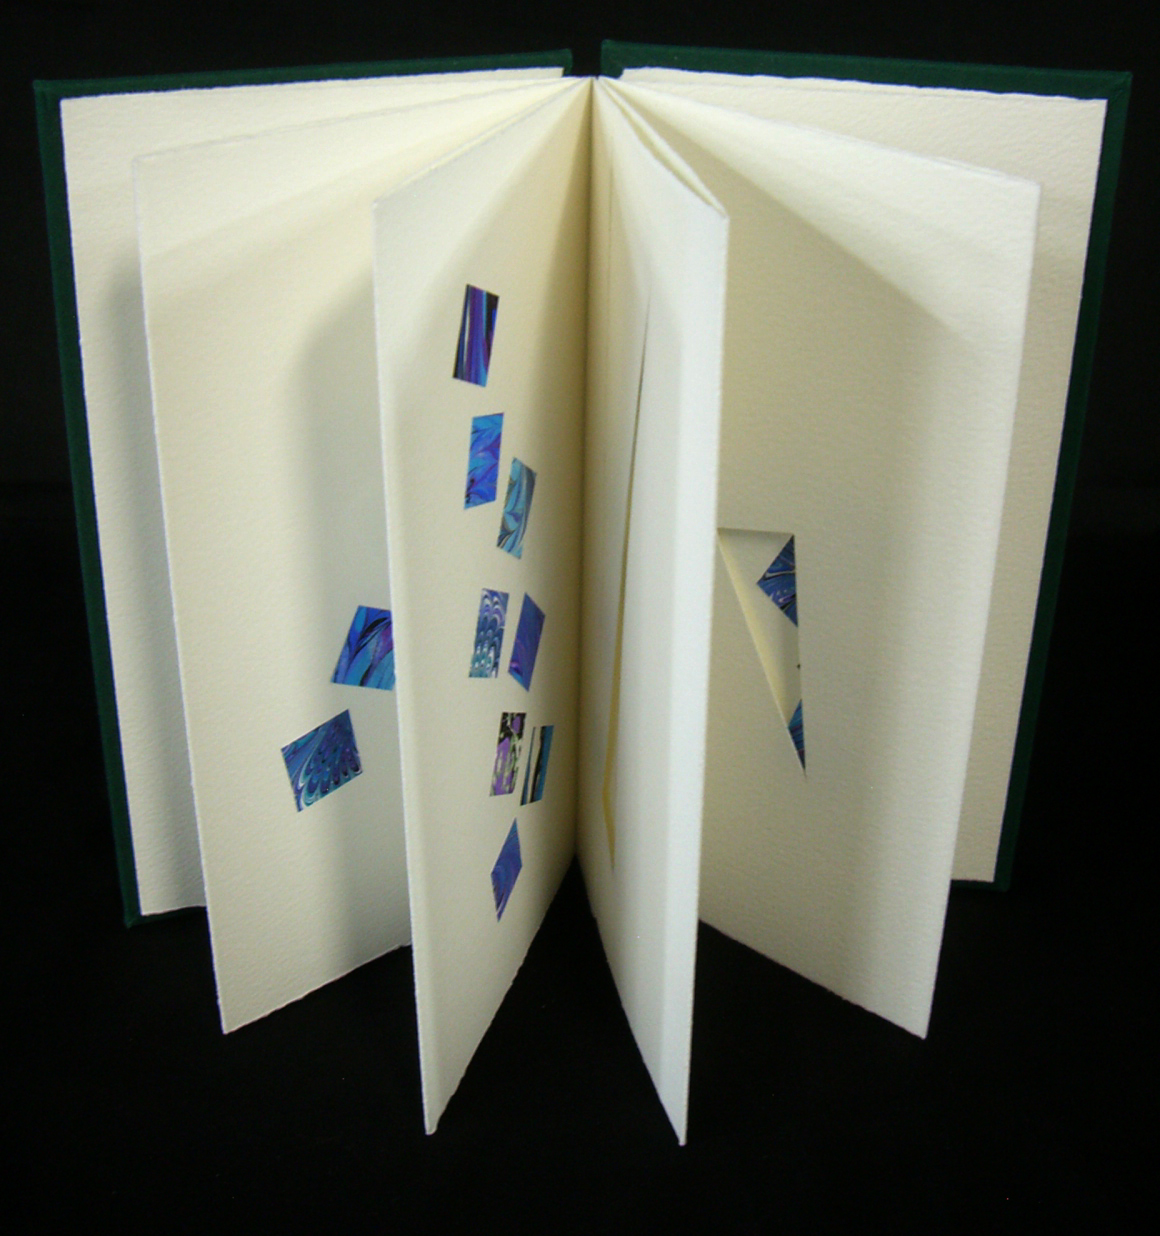 """Elizabeth Teviotdale, """"Spolia,"""" Accordion book (paper, boards, bookcloth) with applied hand-marbled paper, 2014, Kalamazoo, MI"""